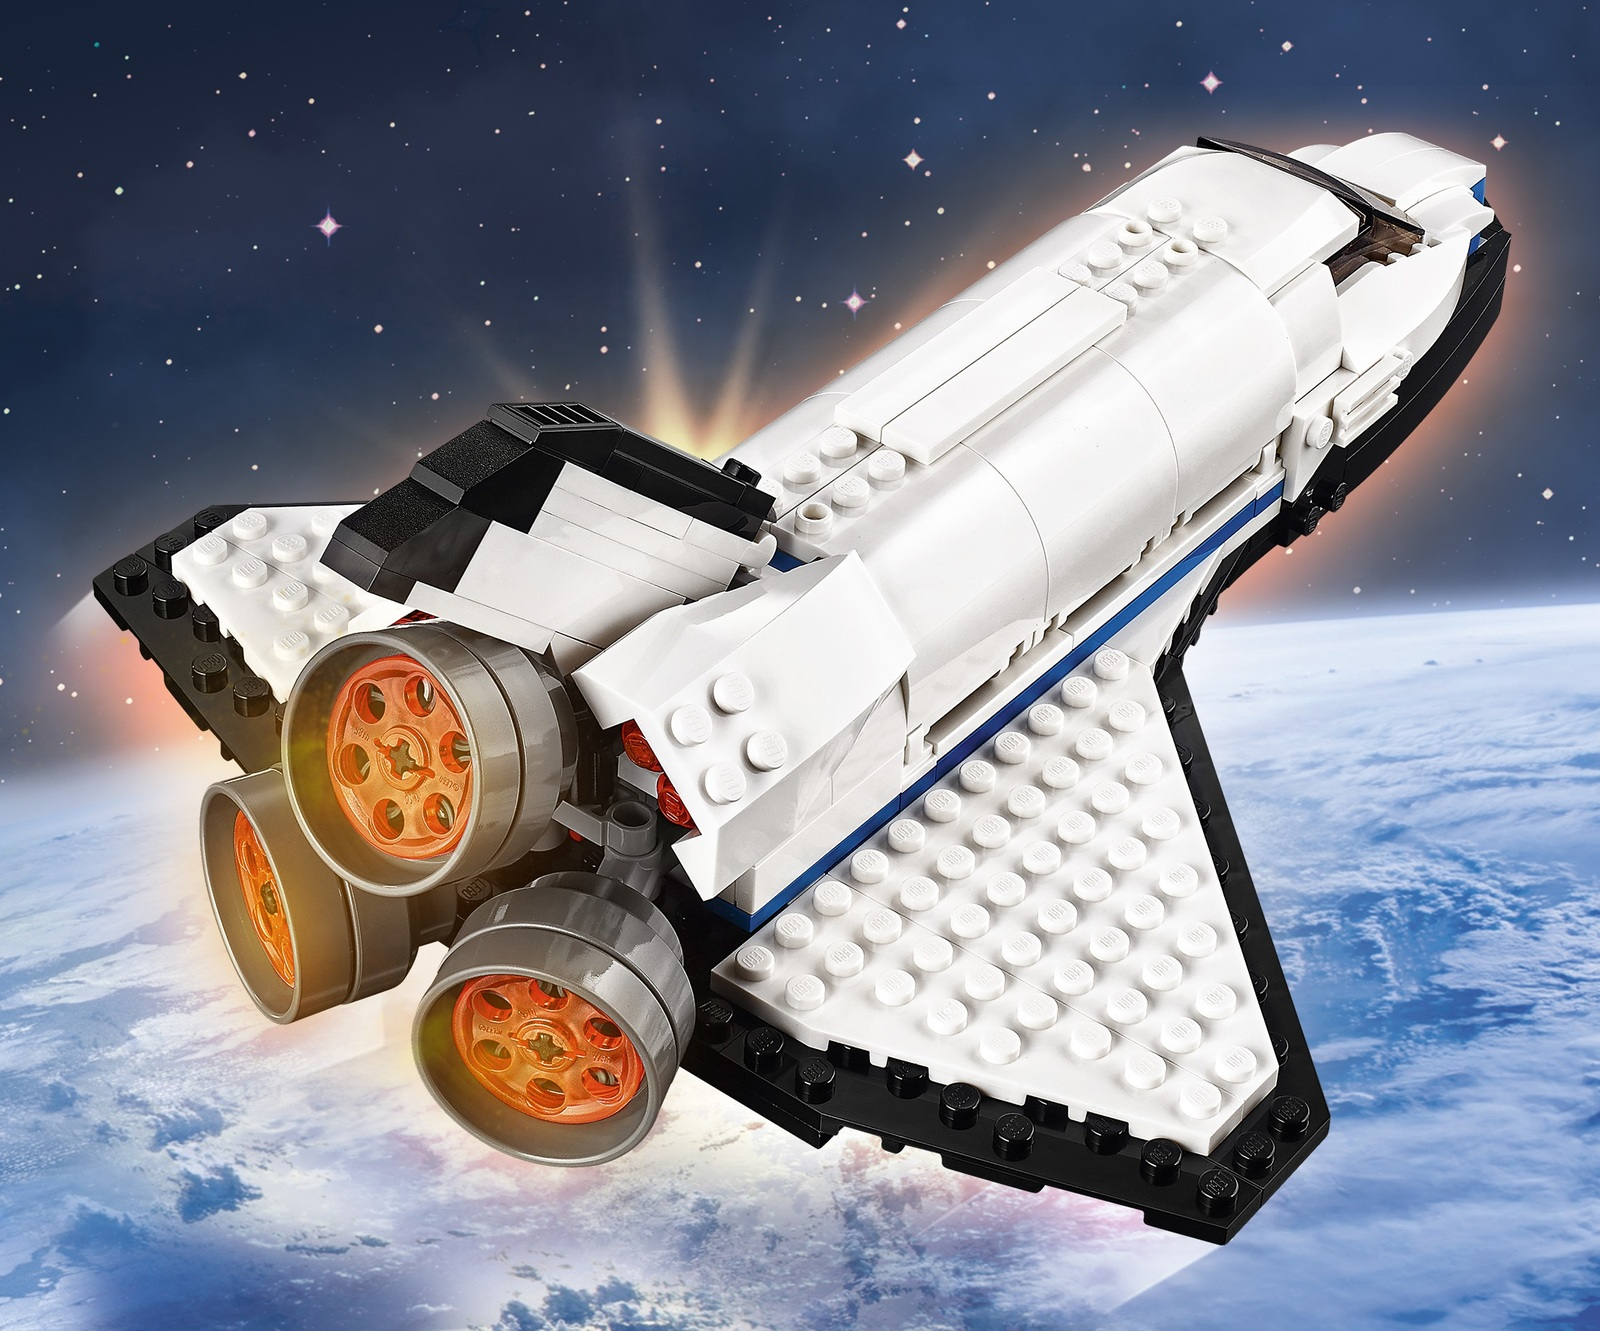 space shuttle explorer lego - photo #16